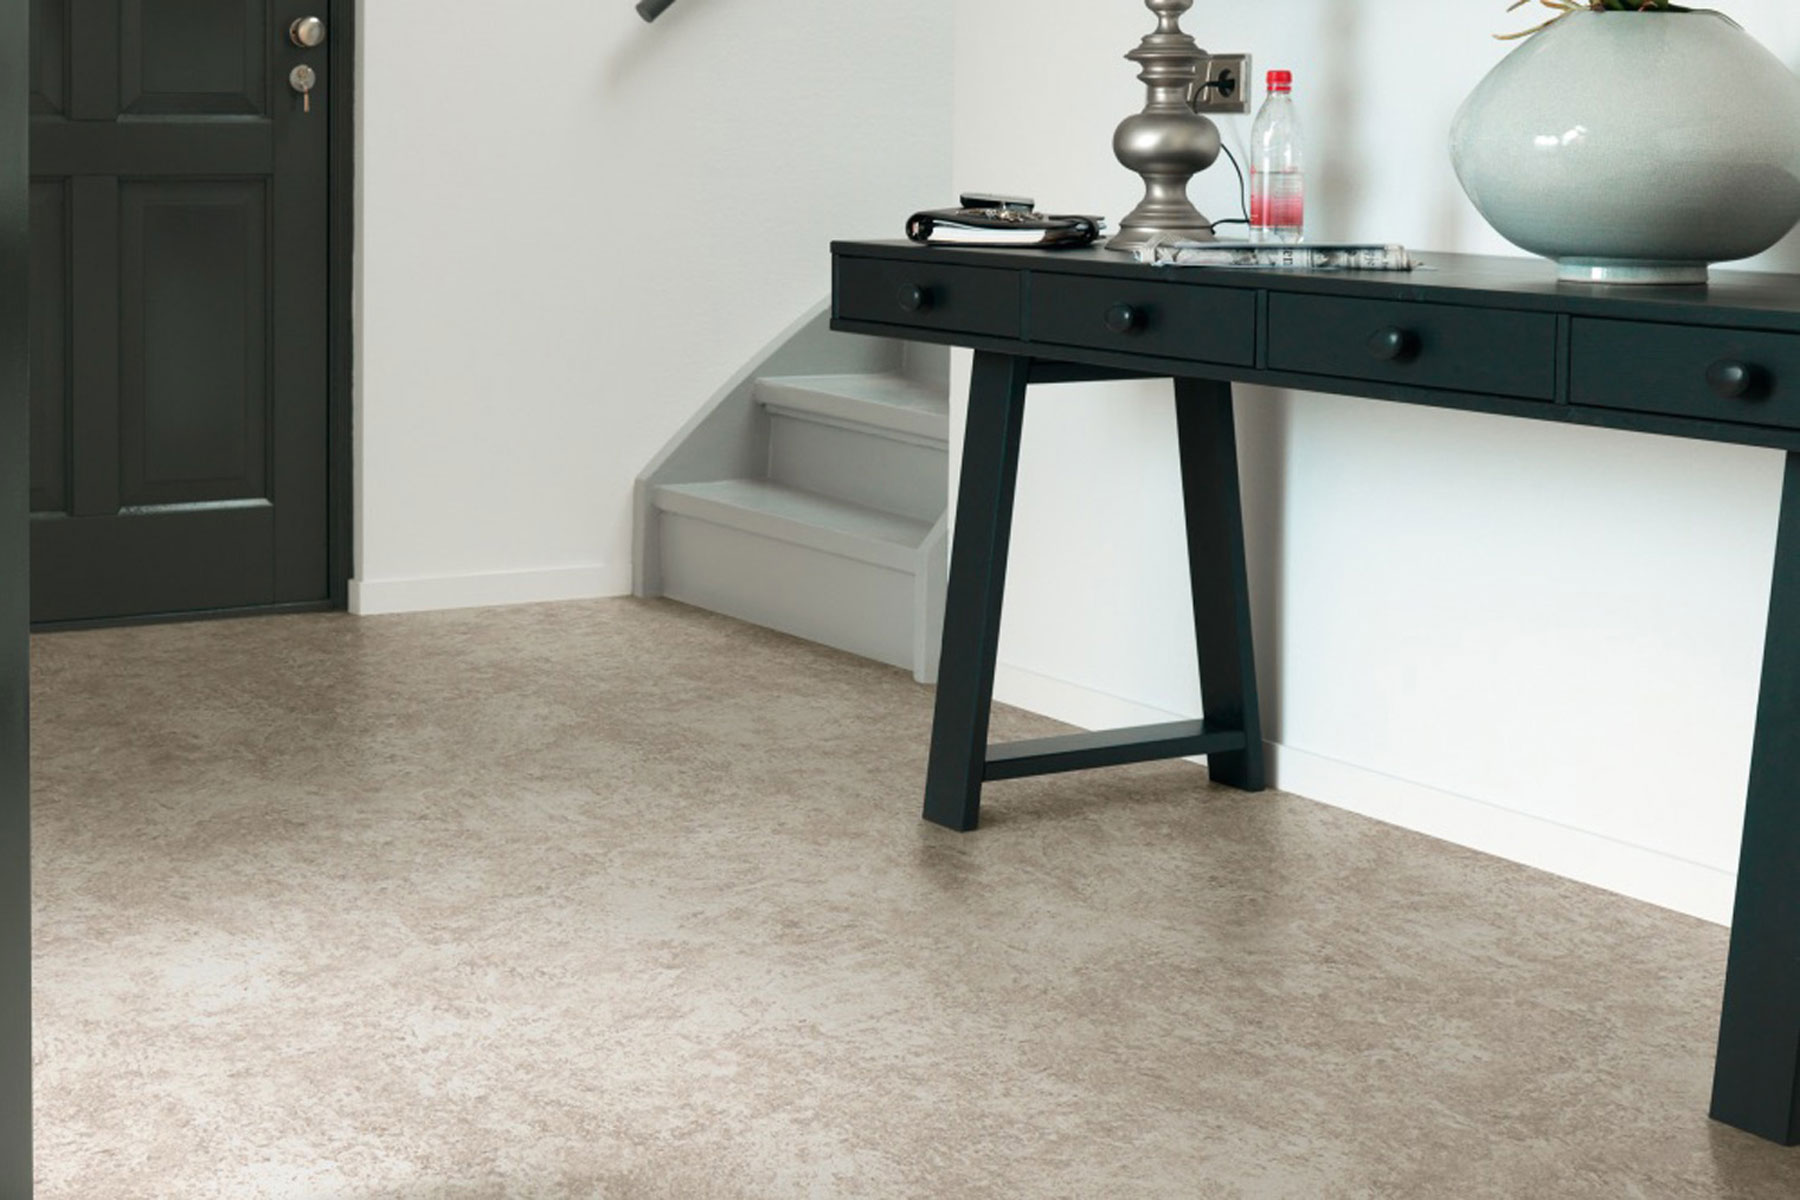 Flooring Supplier & Flooring Showroom in Suffolk - Harts Carpets and Flooring